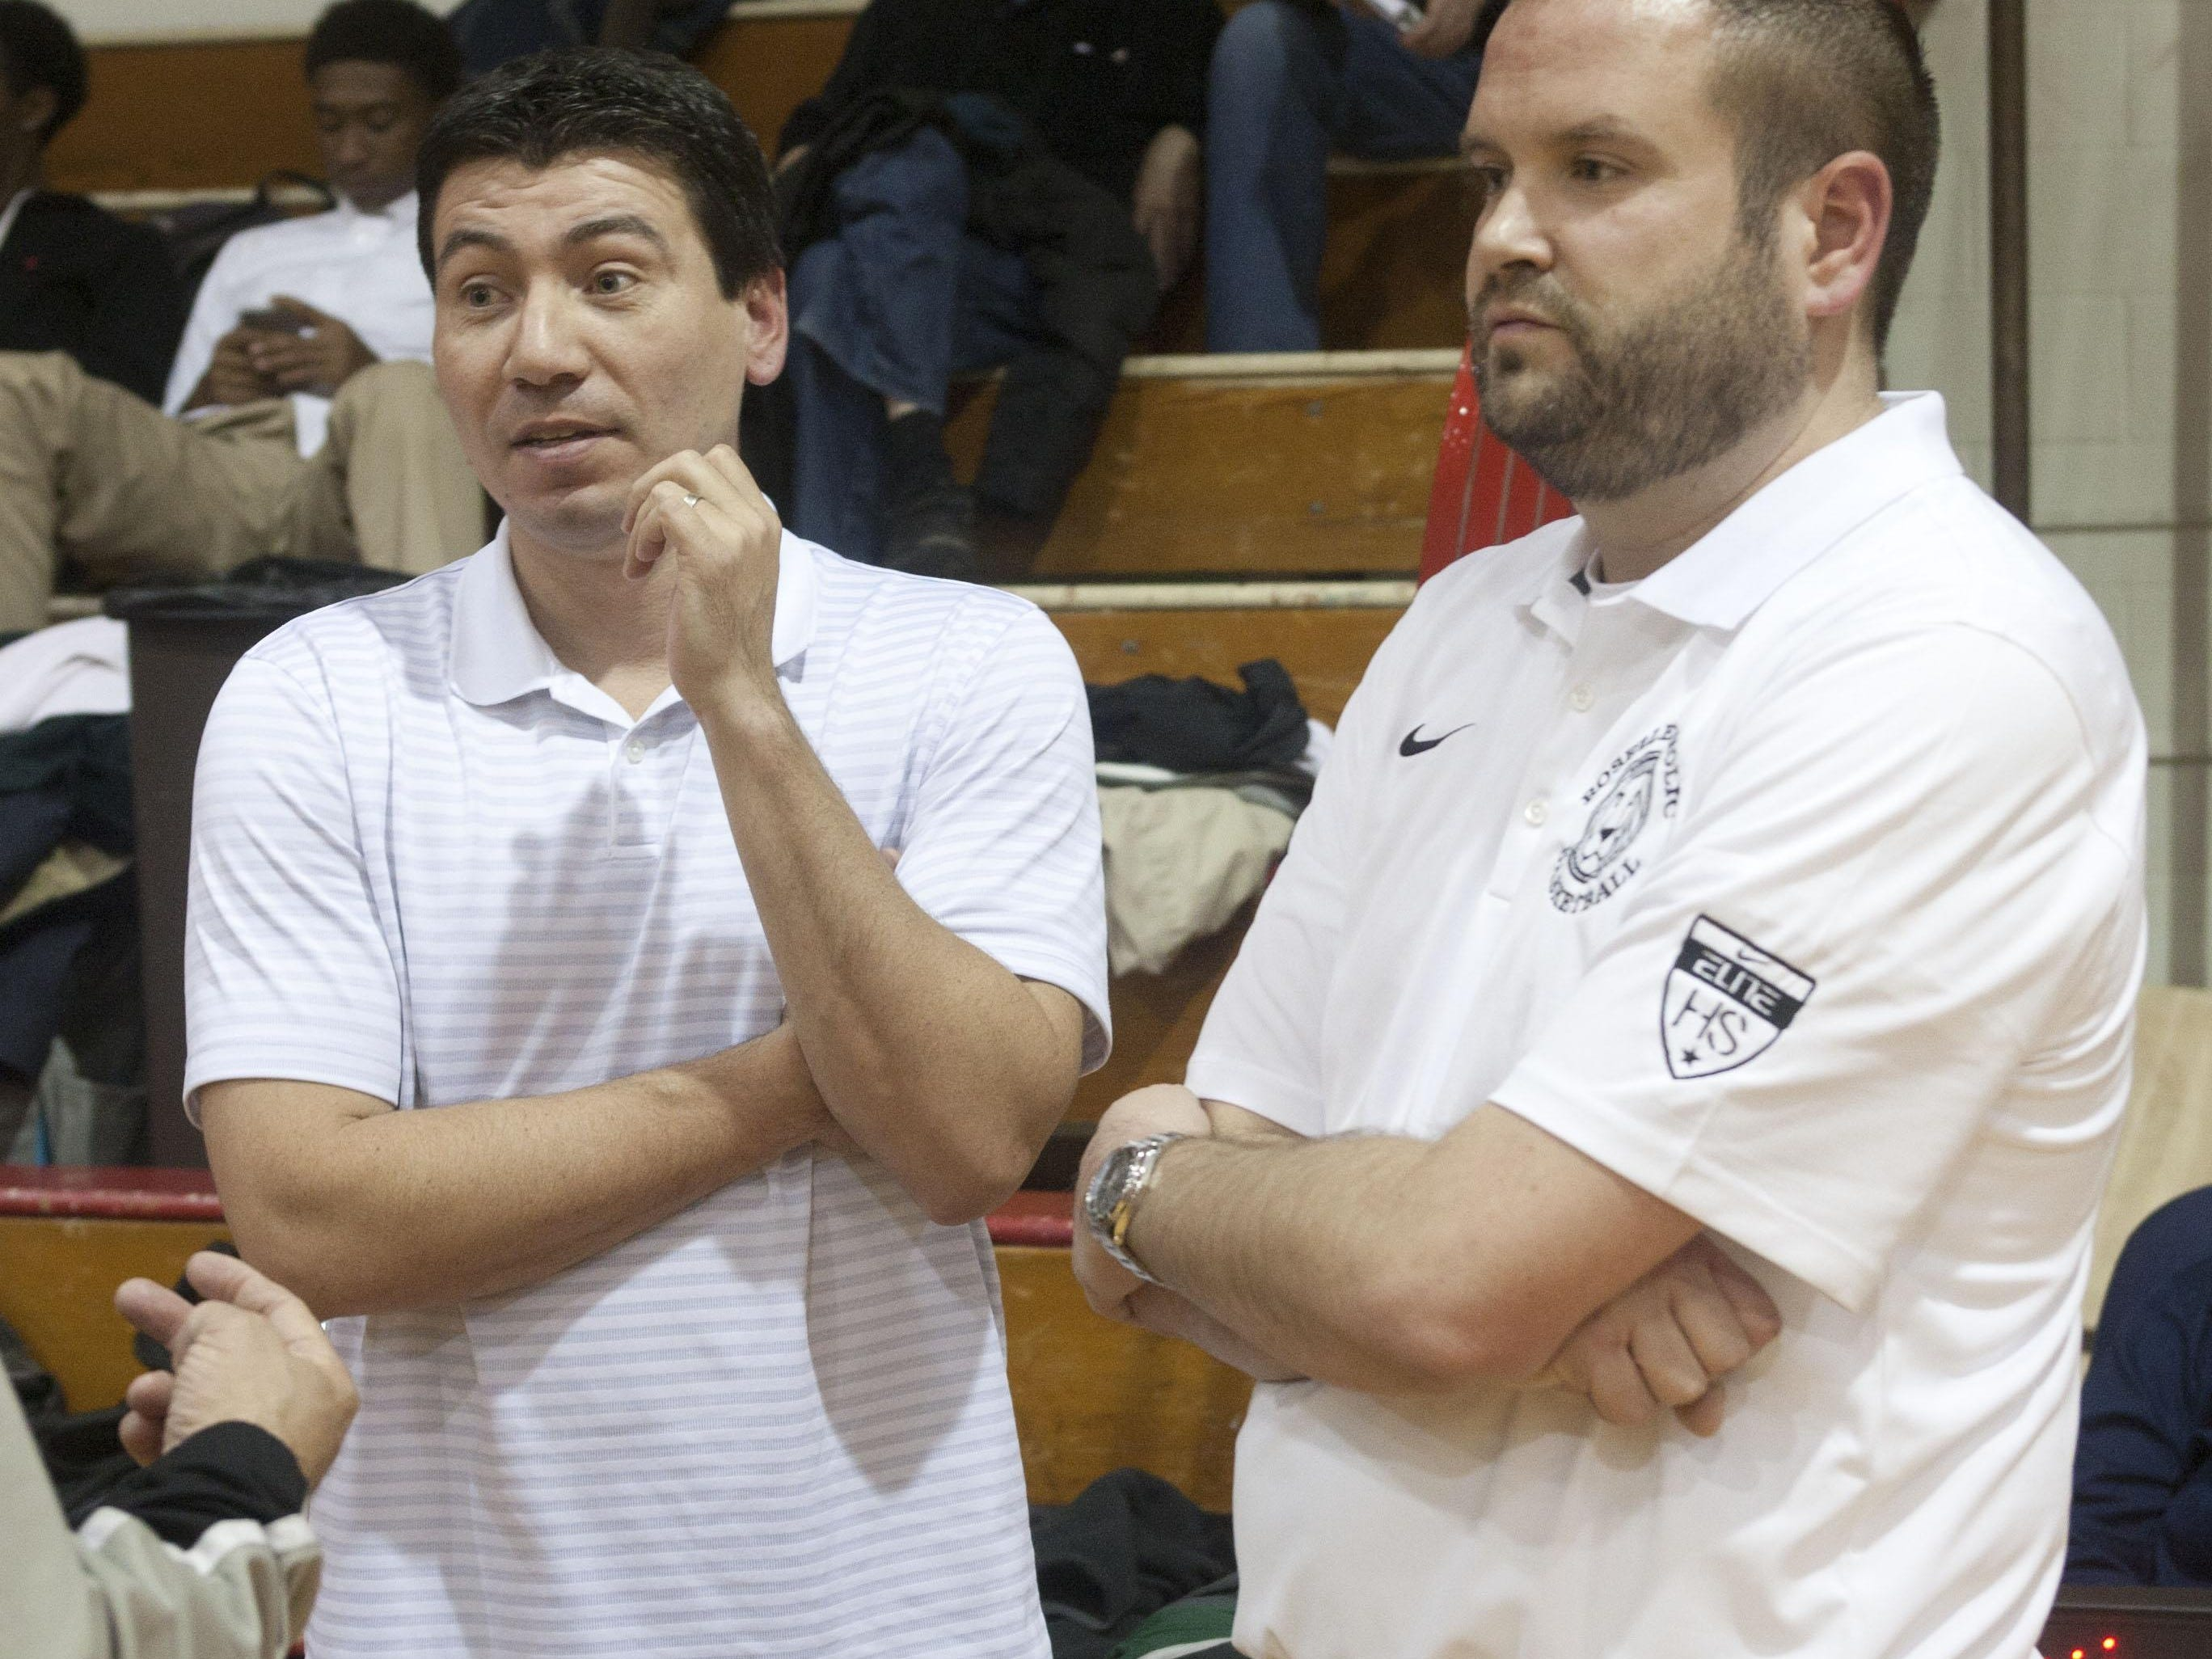 Dave Boff (right) and John Giraldo (left) Roselle Catholic HS basketball coaches at a scrimmage at Pt. Pleasant Beach HS - December 15, 2014-Pt. Pleasant, NJ.-